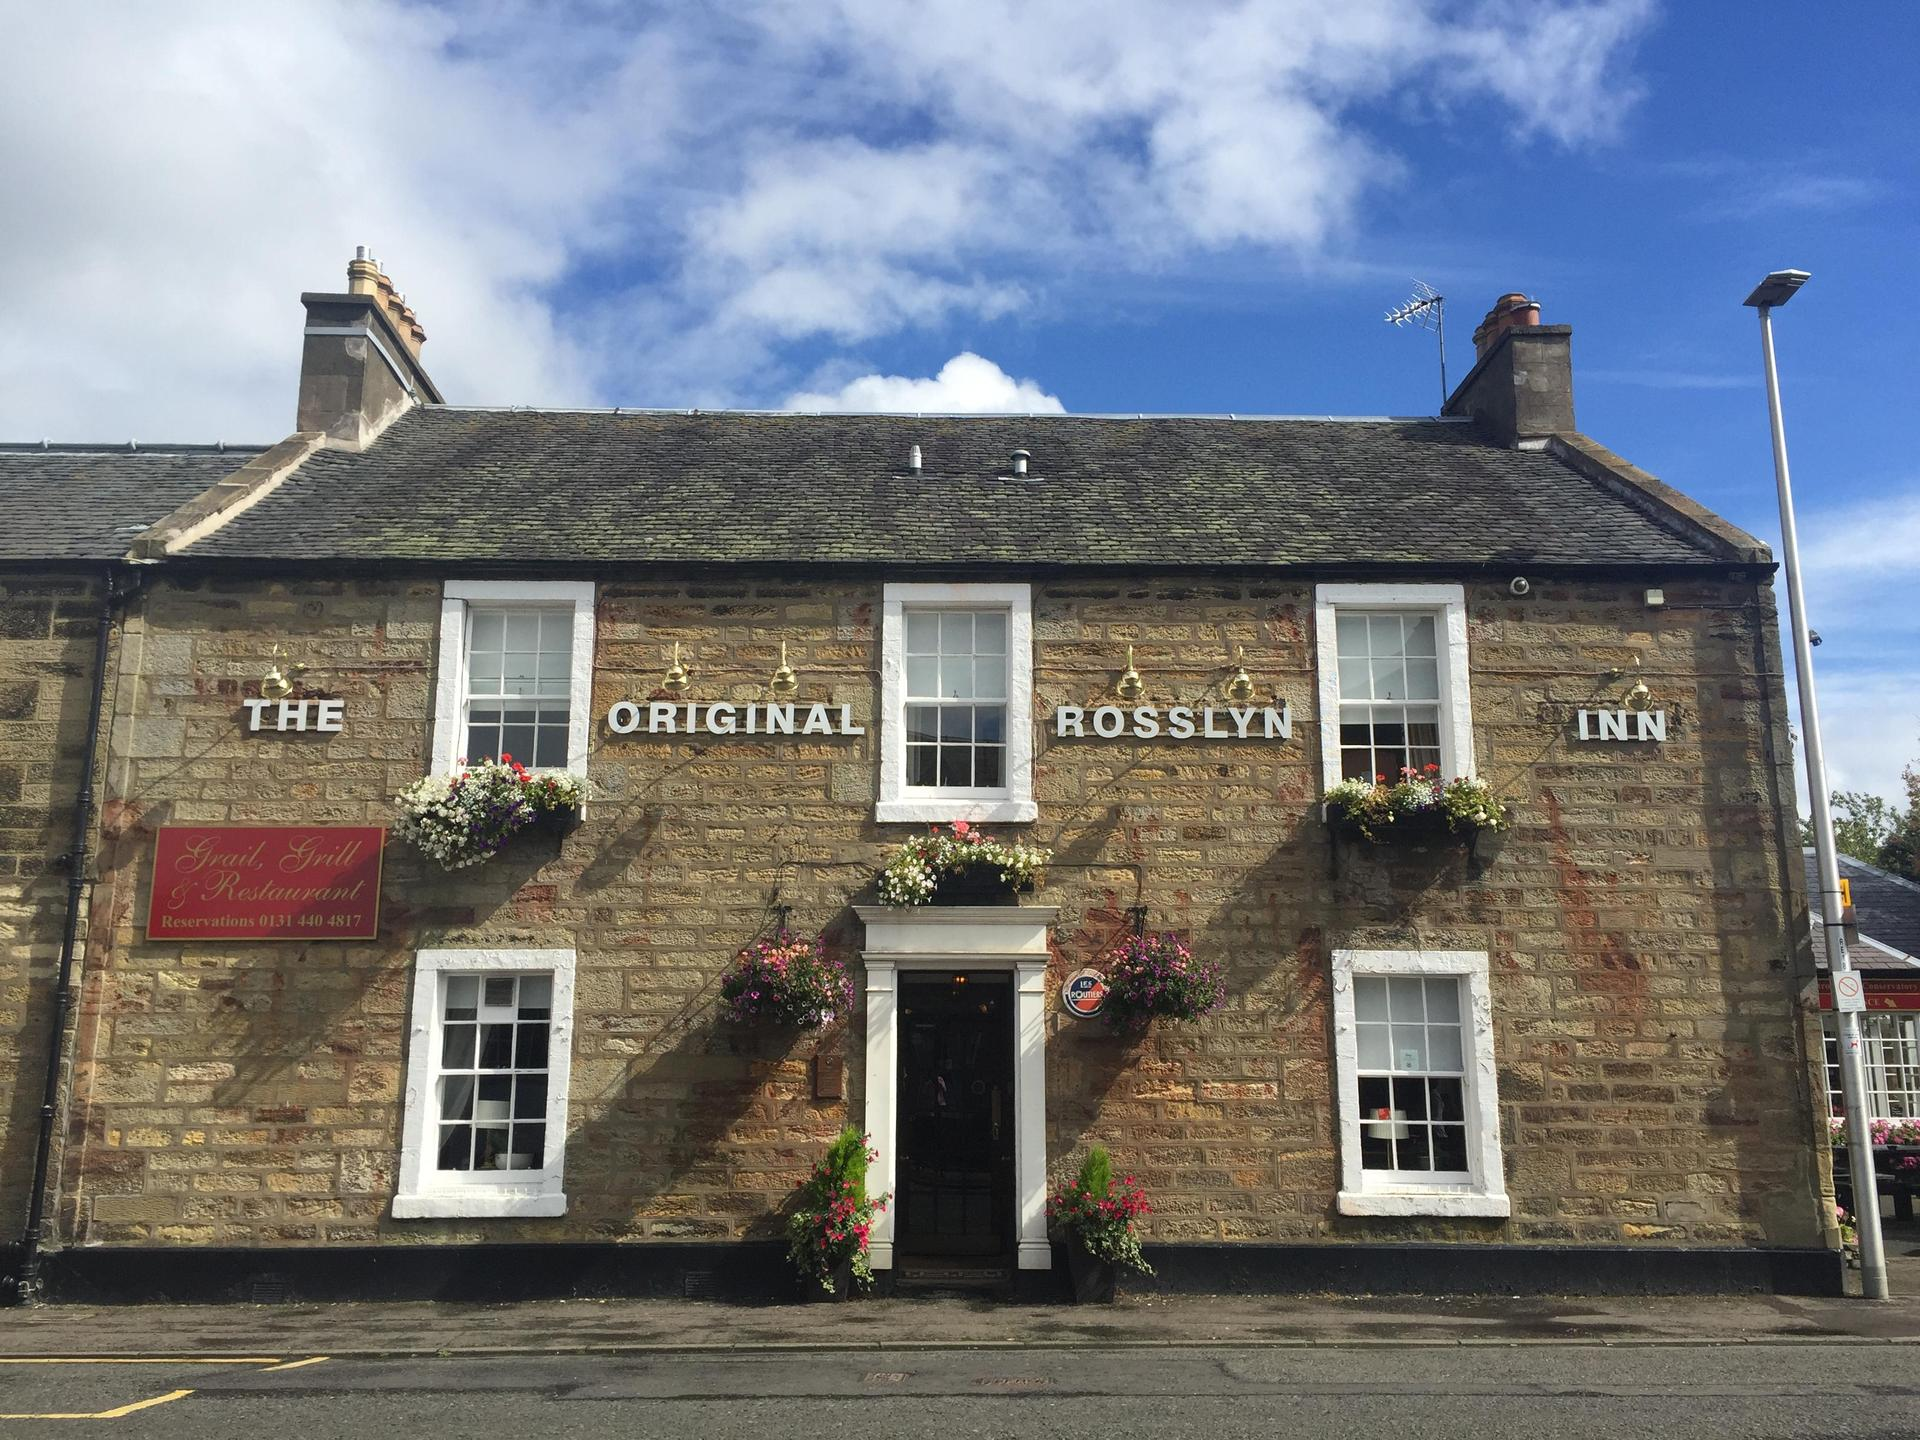 The Original Rosslyn Inn in Edinburgh